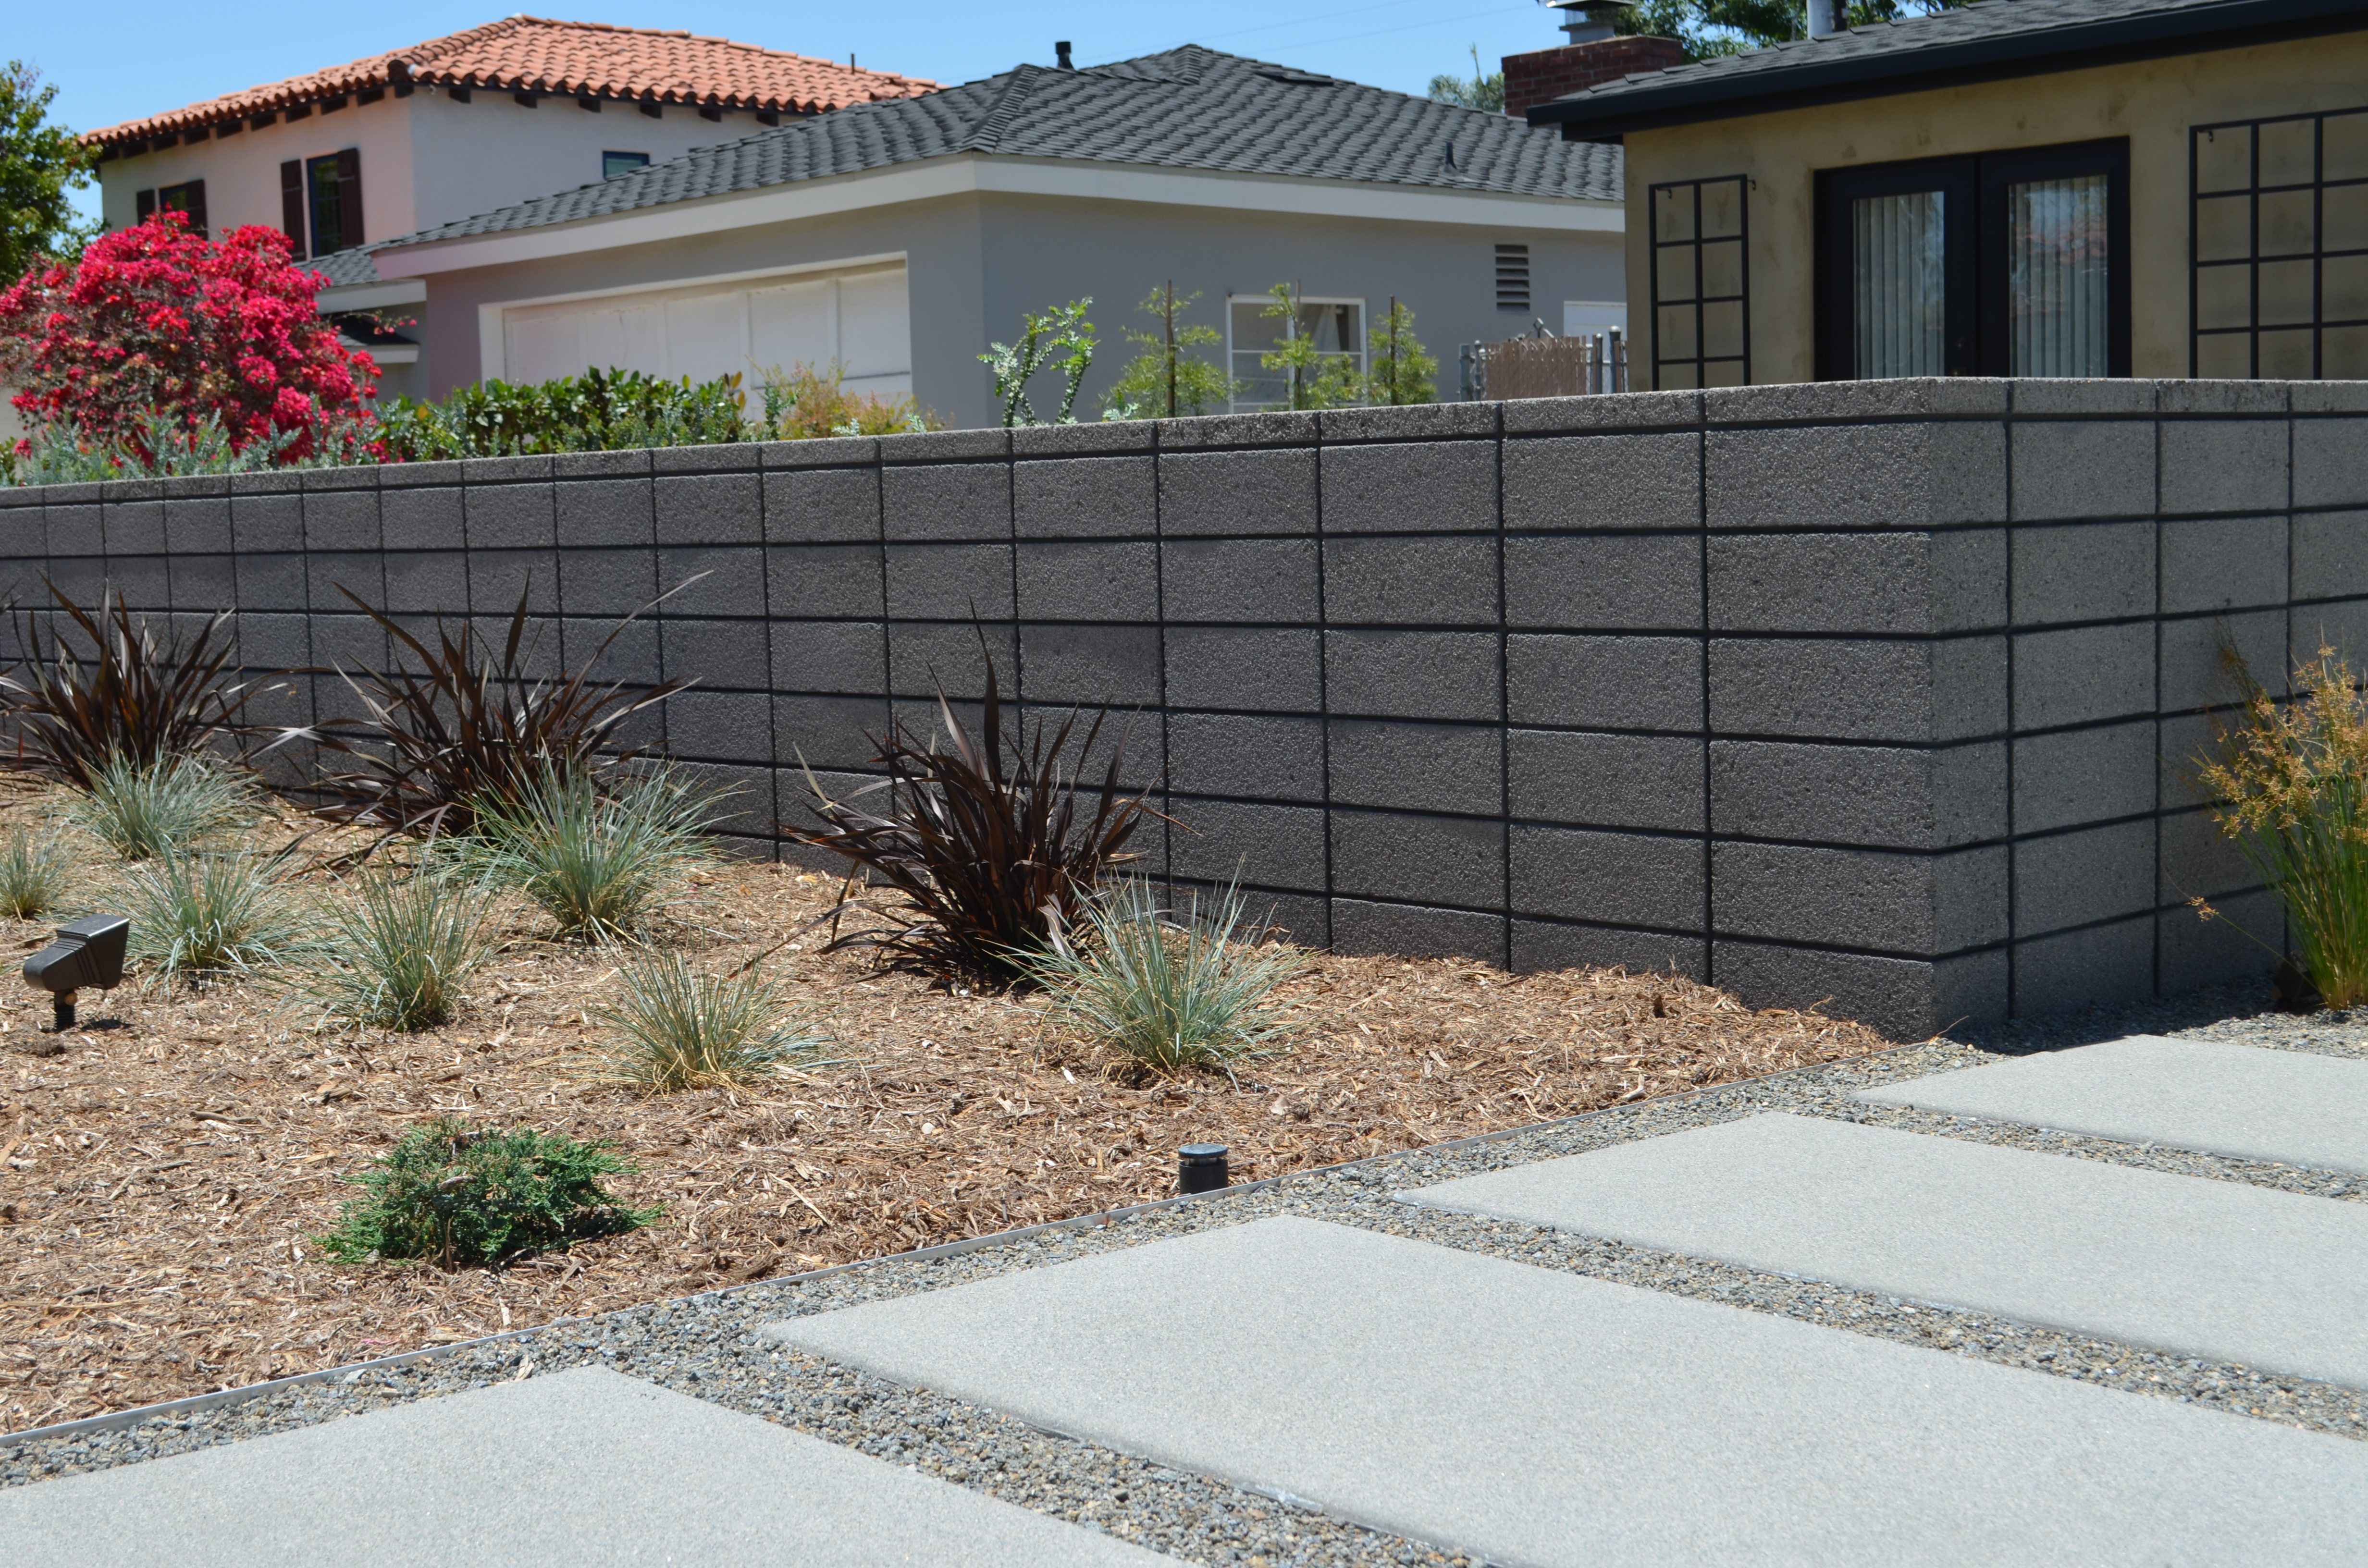 San Diego Landscaping: Walls